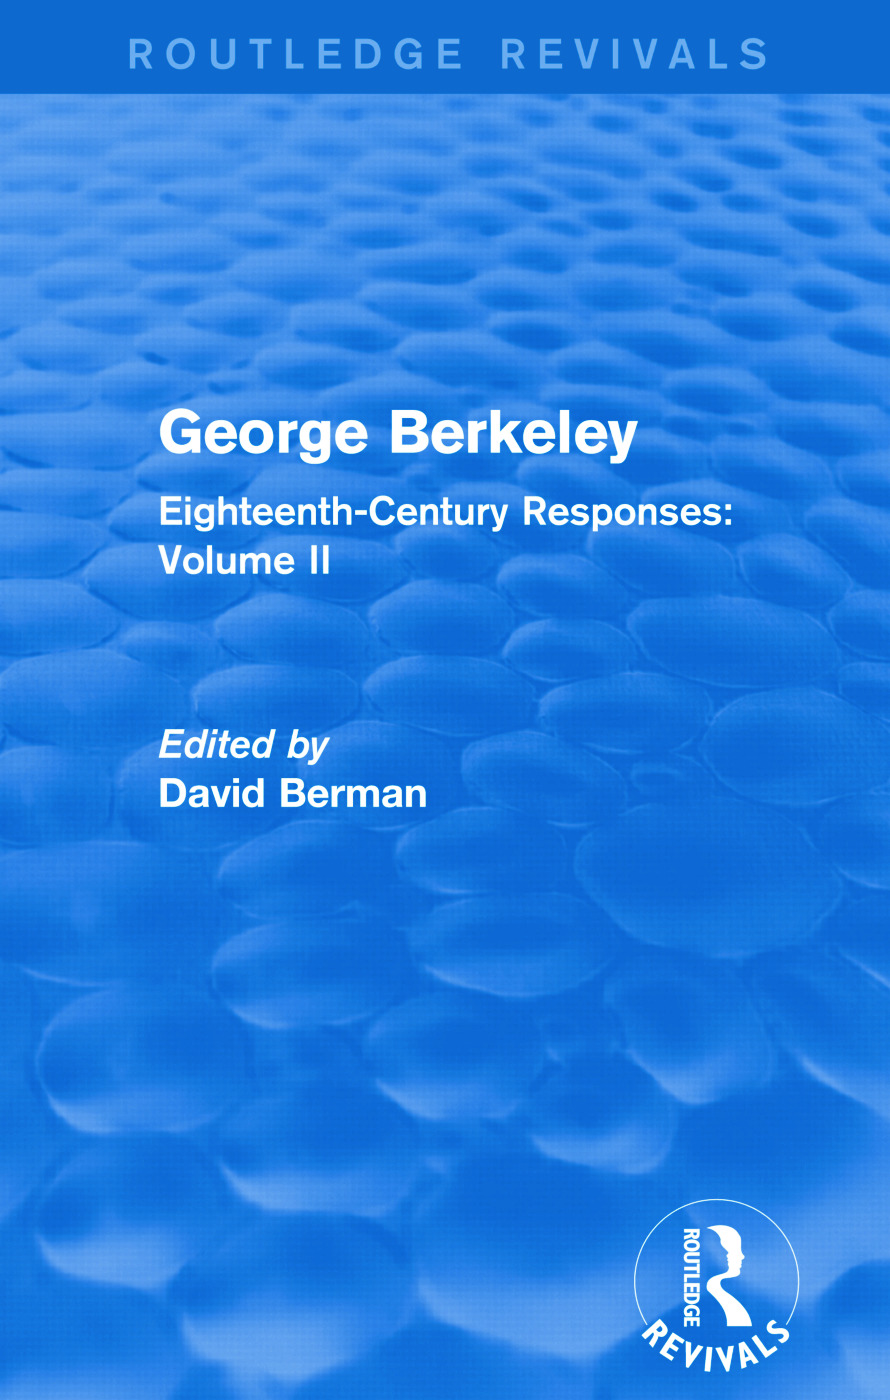 George Berkeley (Routledge Revivals): Eighteenth-Century Responses: Volume II book cover